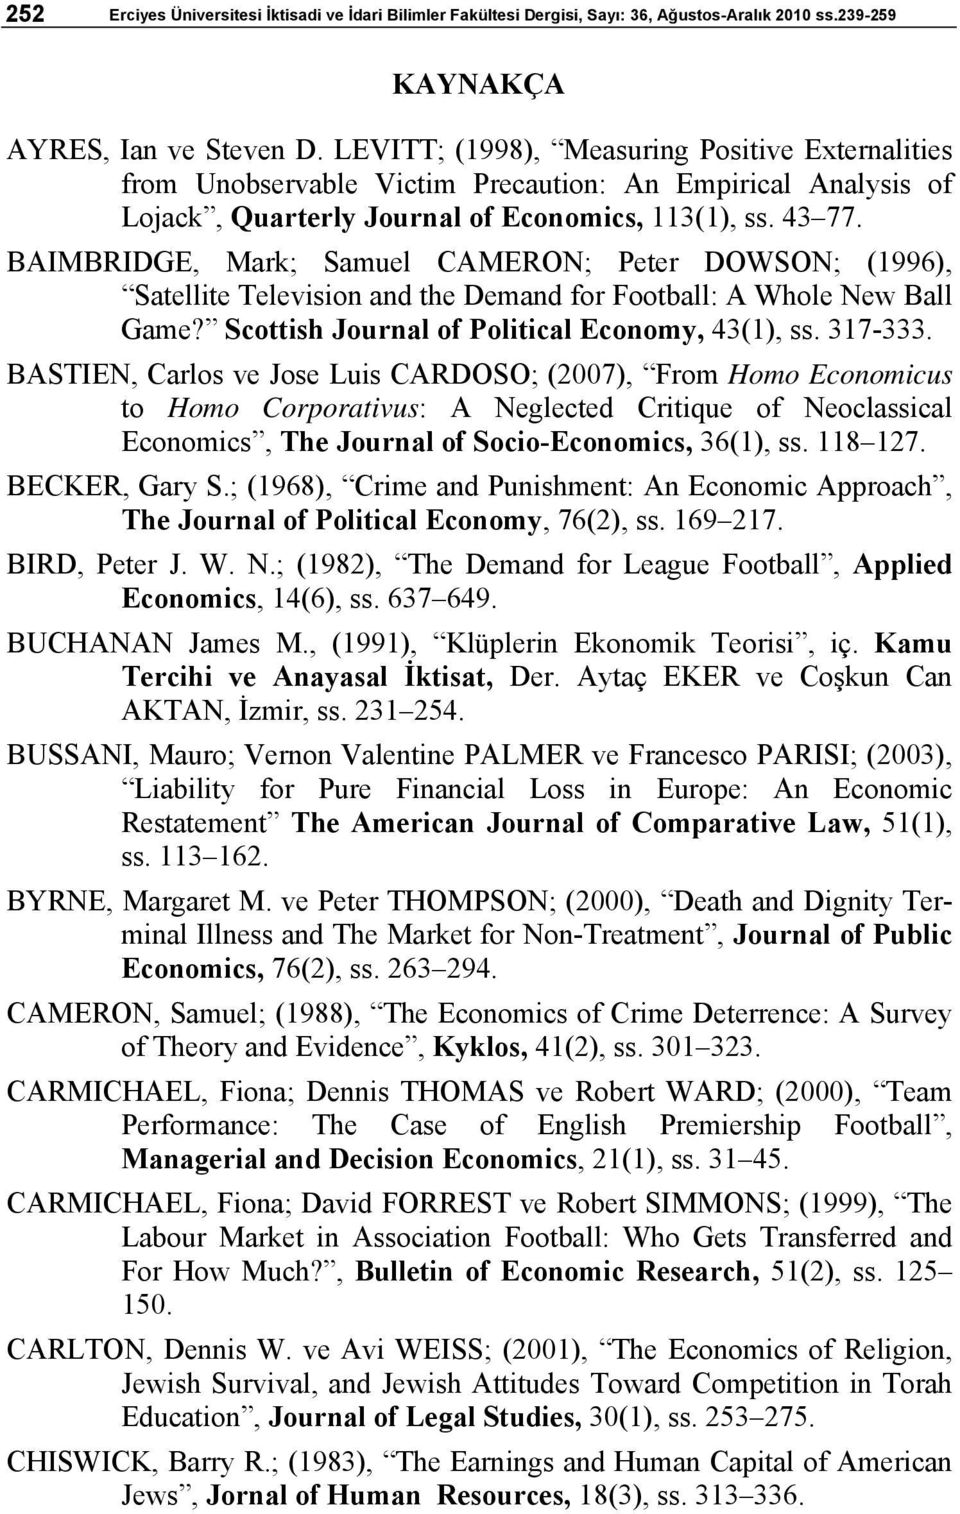 BAIMBRIDGE, Mark; Samuel CAMERON; Peter DOWSON; (1996), Satellite Television and the Demand for Football: A Whole New Ball Game? Scottish Journal of Political Economy, 43(1), ss. 317-333.